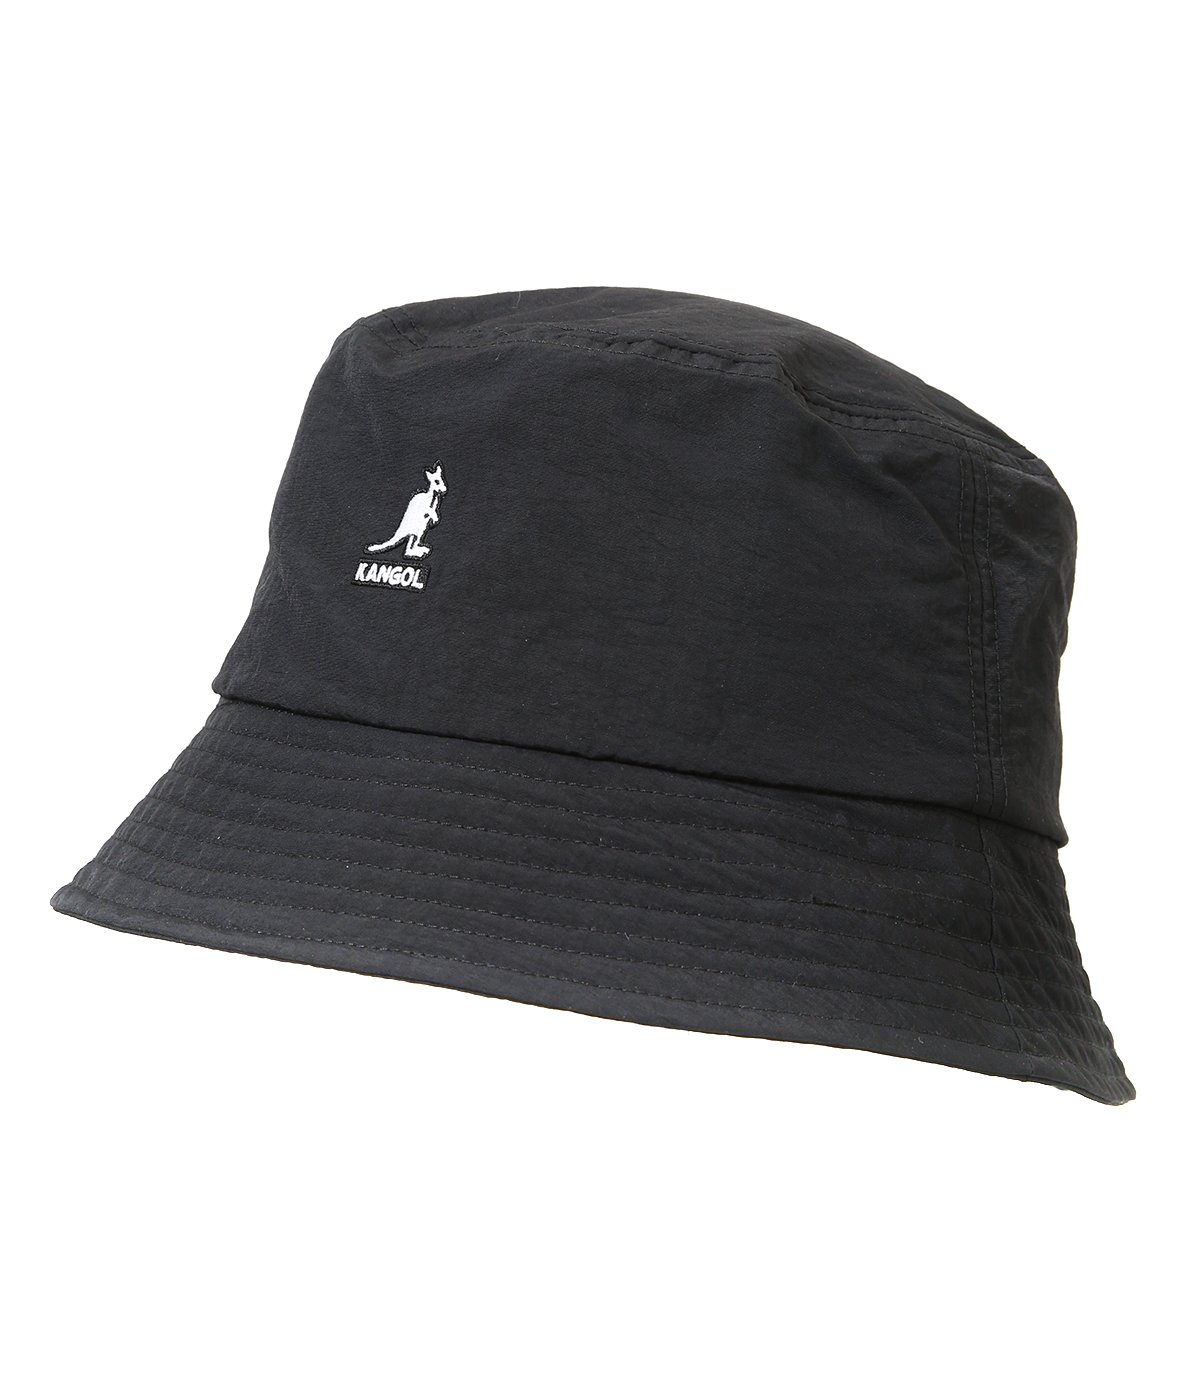 SMU Nylon Bucket Hat